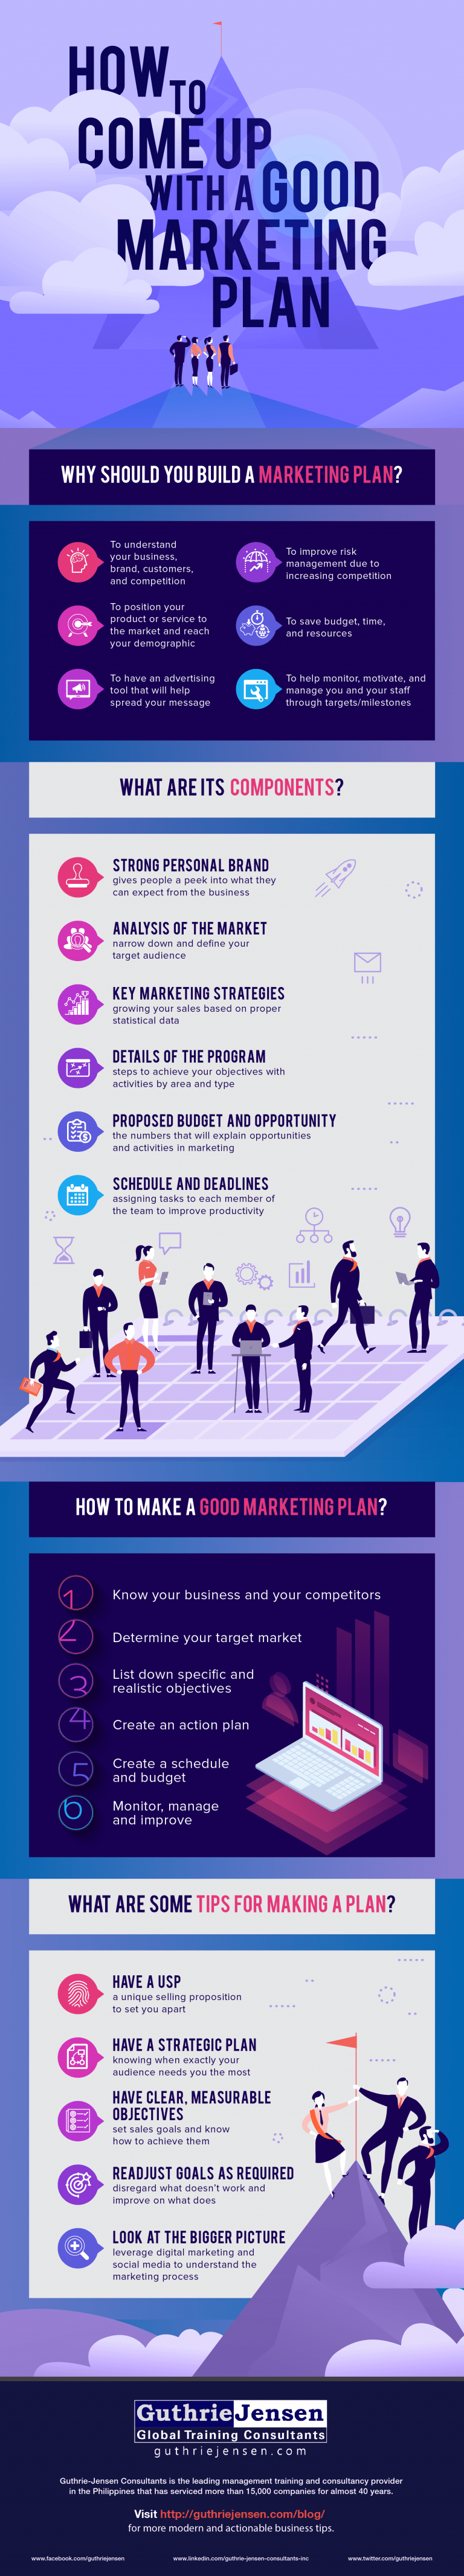 How to Build Better Marketing Plans